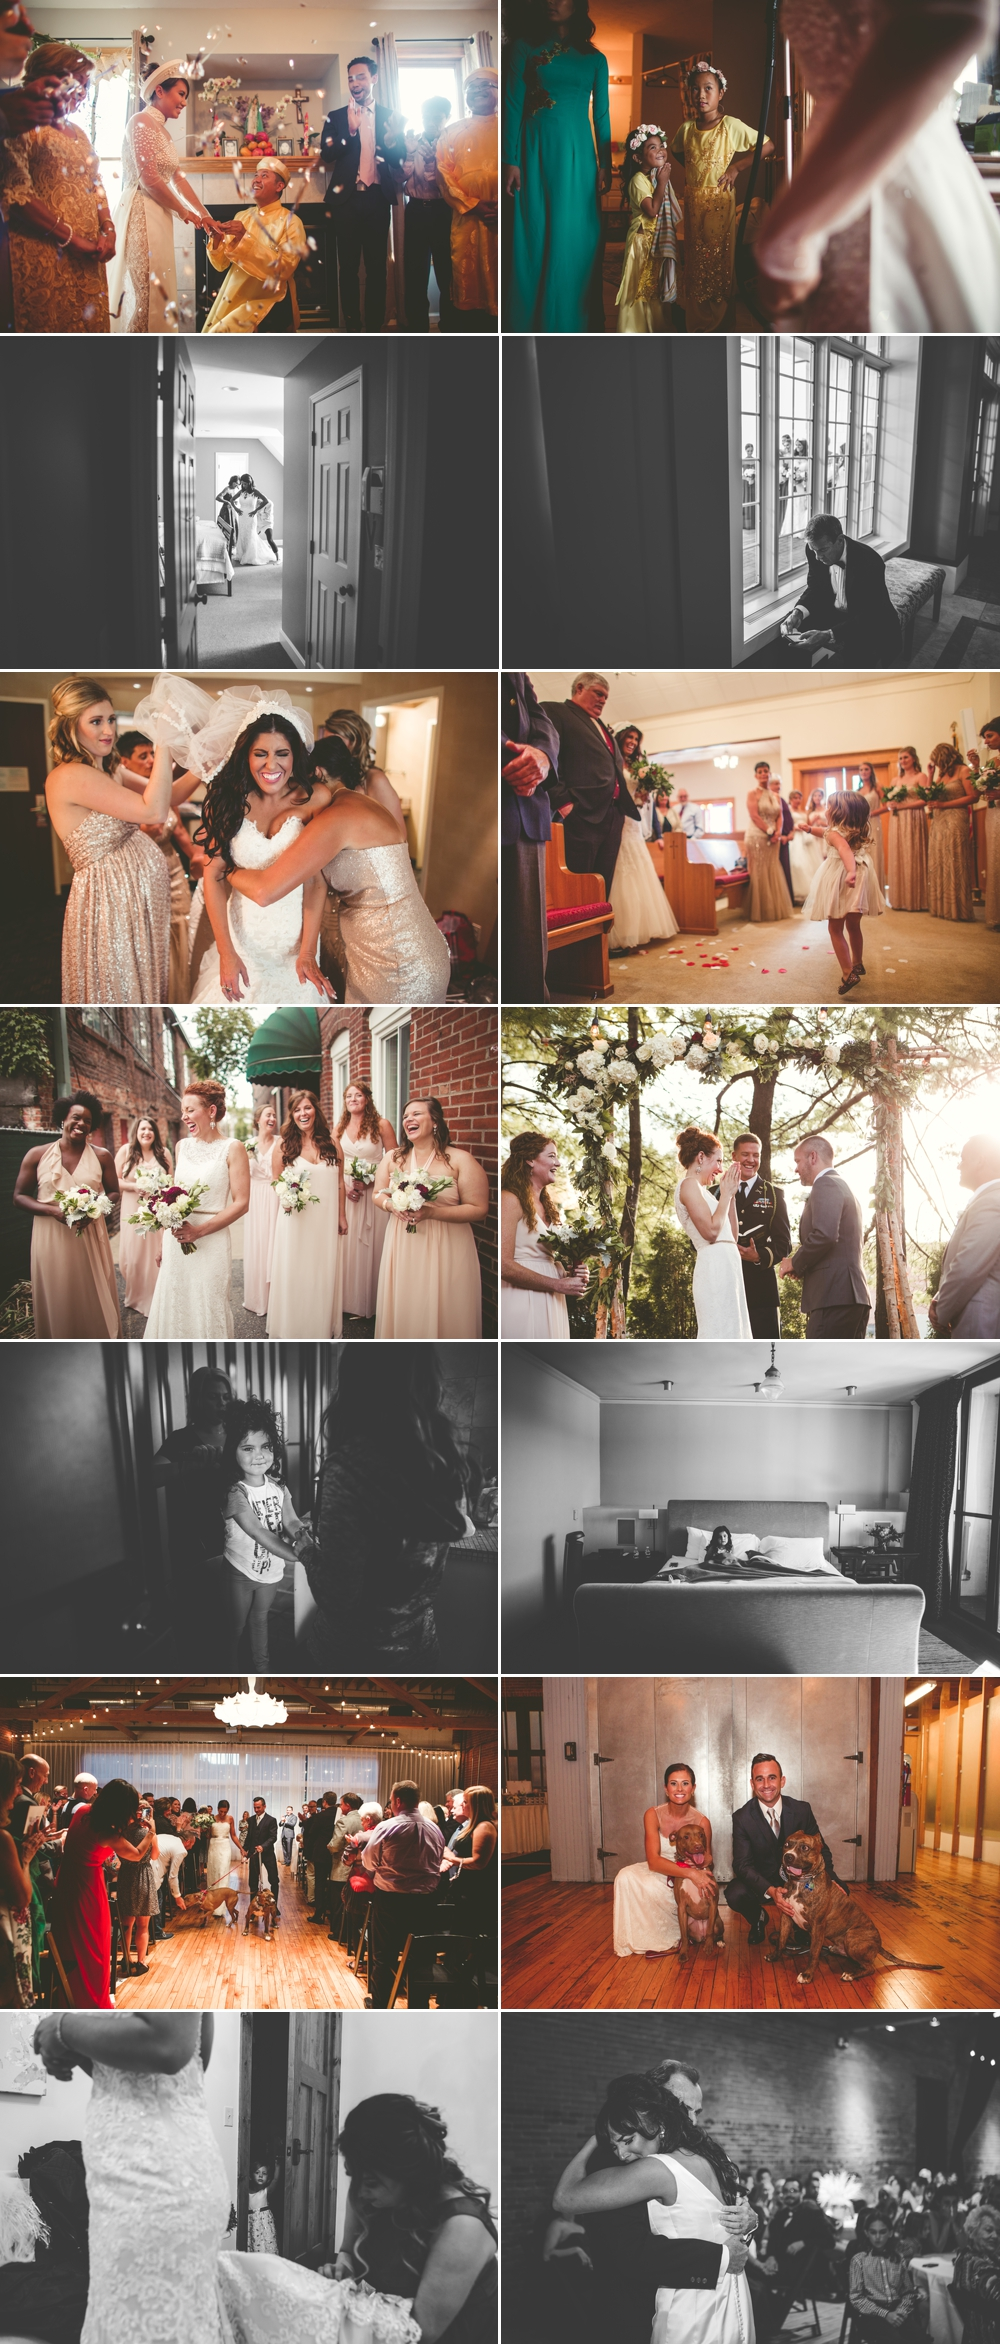 jason_domingues_photography_best_kansas_city_photography_kc_wedding_weddings0002.jpg